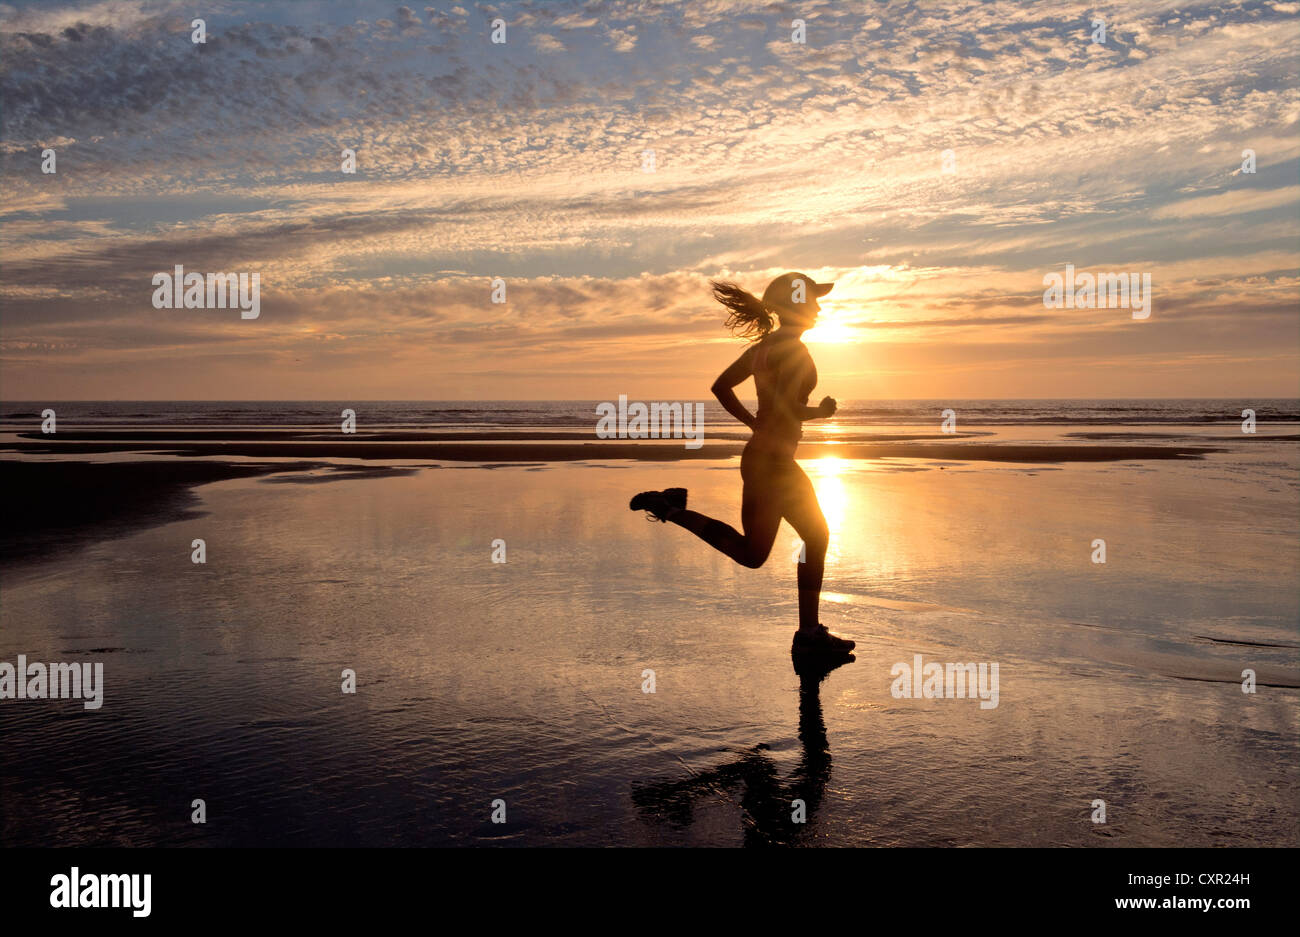 Woman running on beach at sunrise - Stock Image